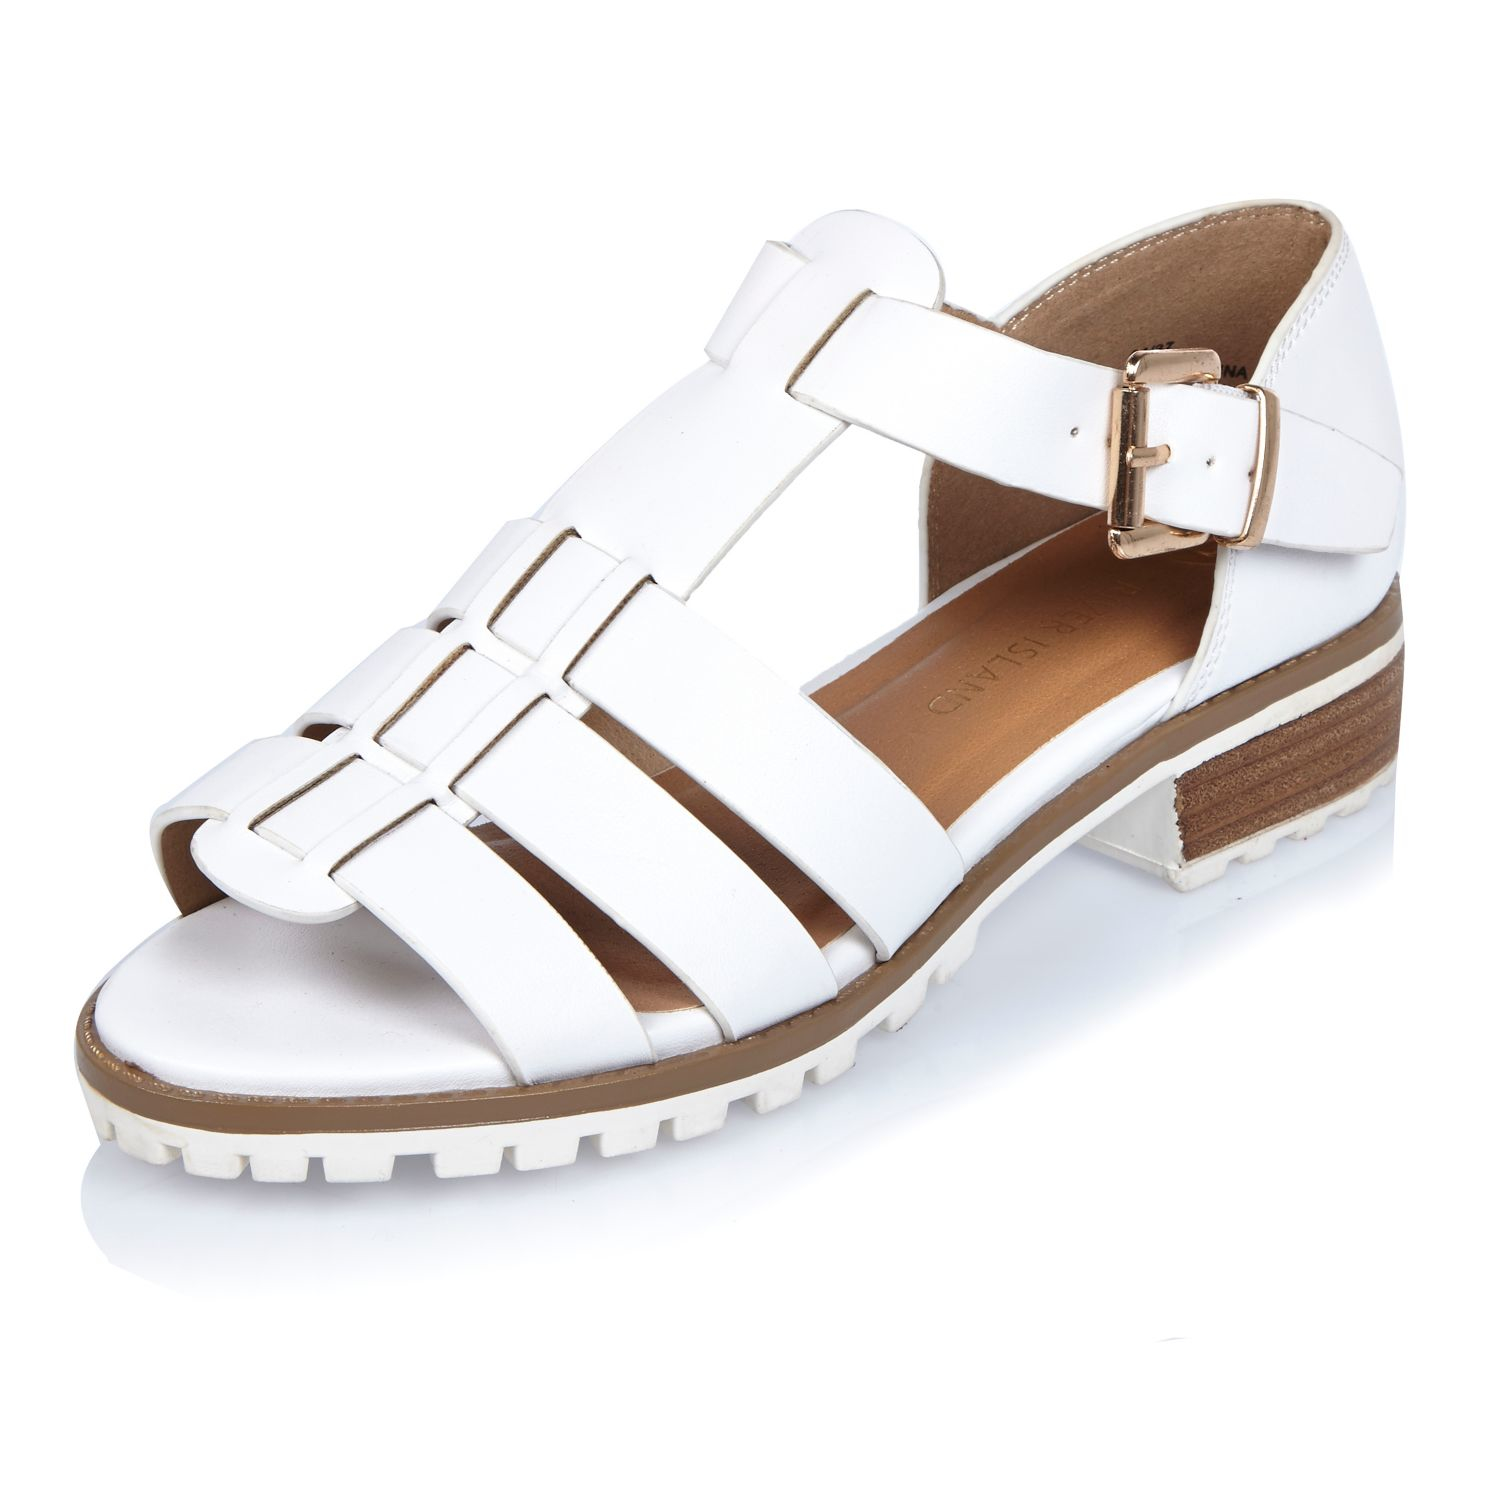 9c8abe2c92b Lyst - River Island White Strappy Open Toe Geek Shoes in White